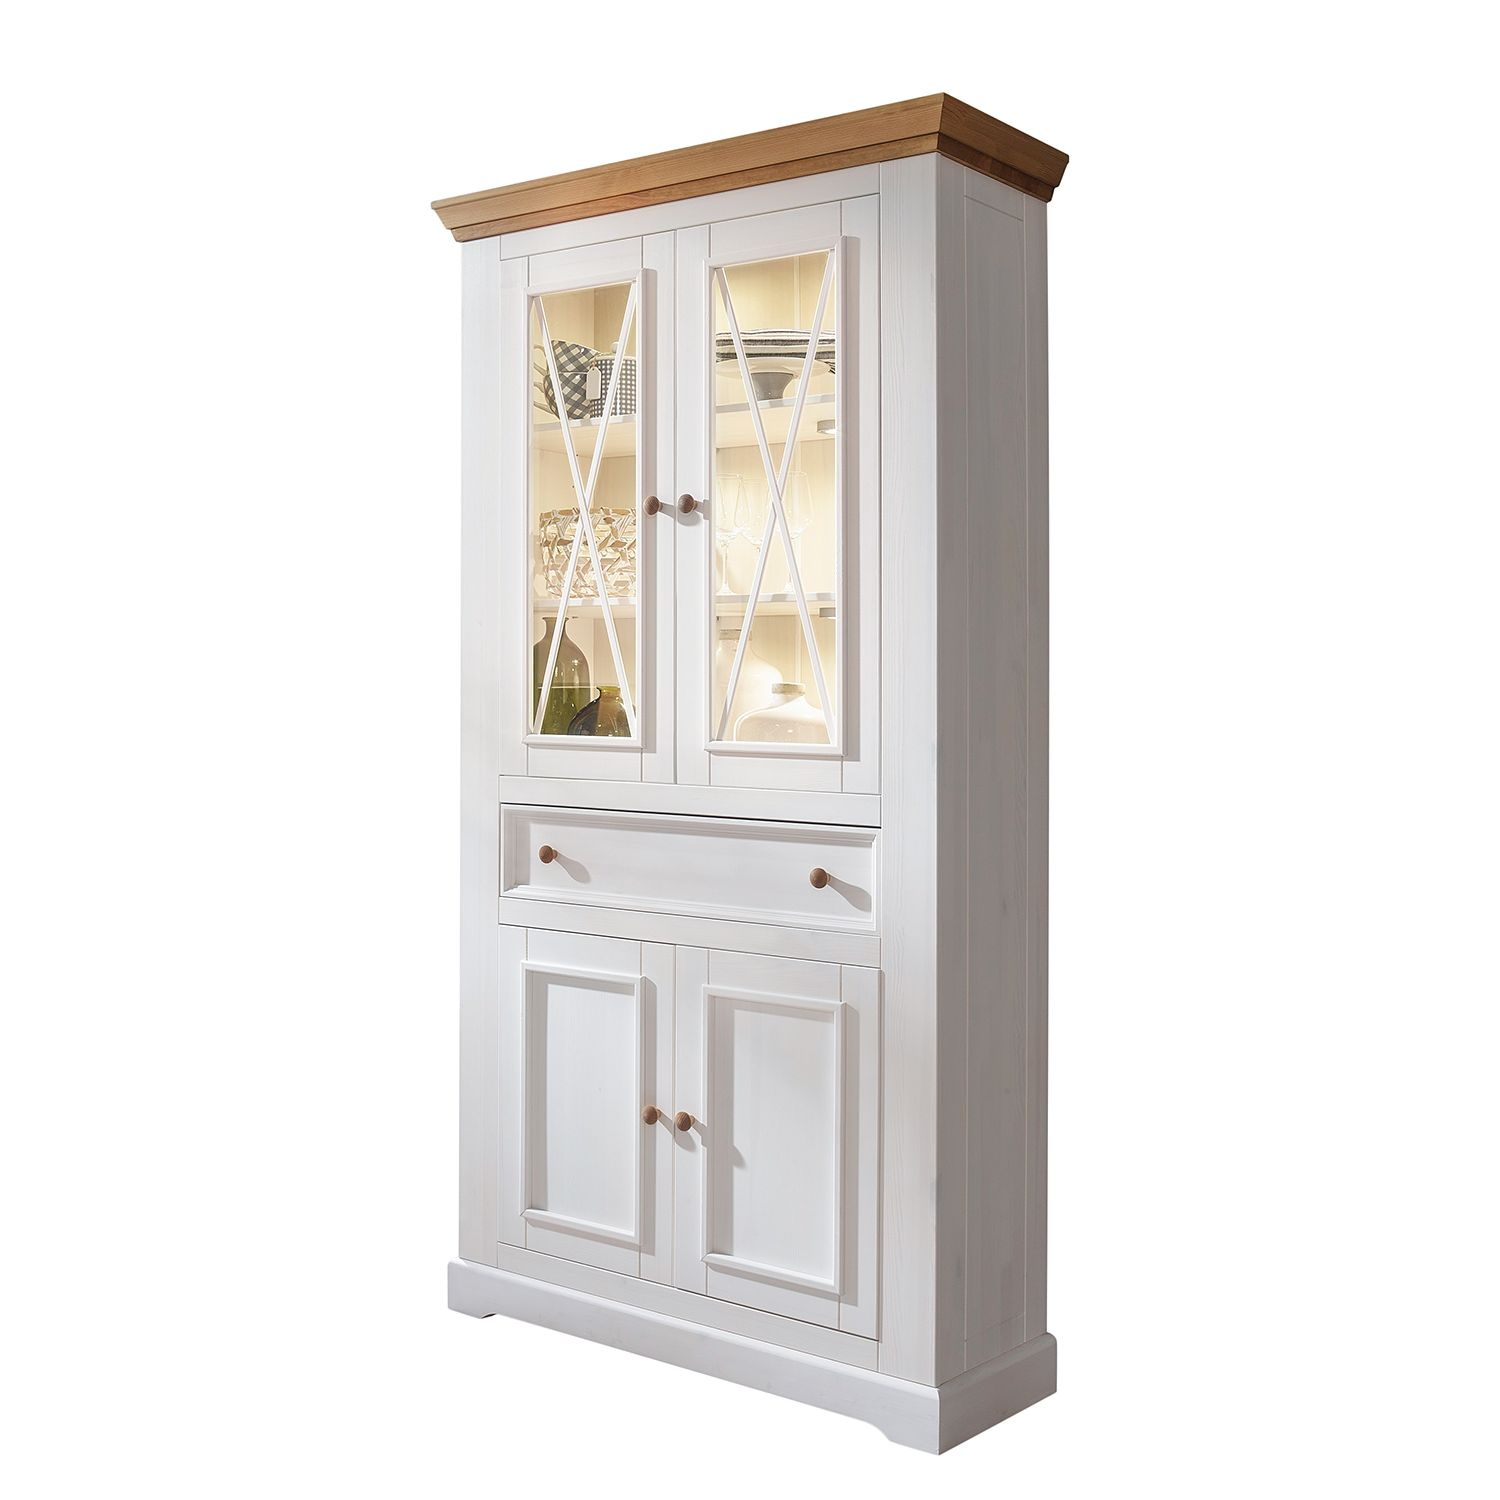 armoire vitrine ummanz pin massif pin blanc pin miel maison belfort previtech. Black Bedroom Furniture Sets. Home Design Ideas